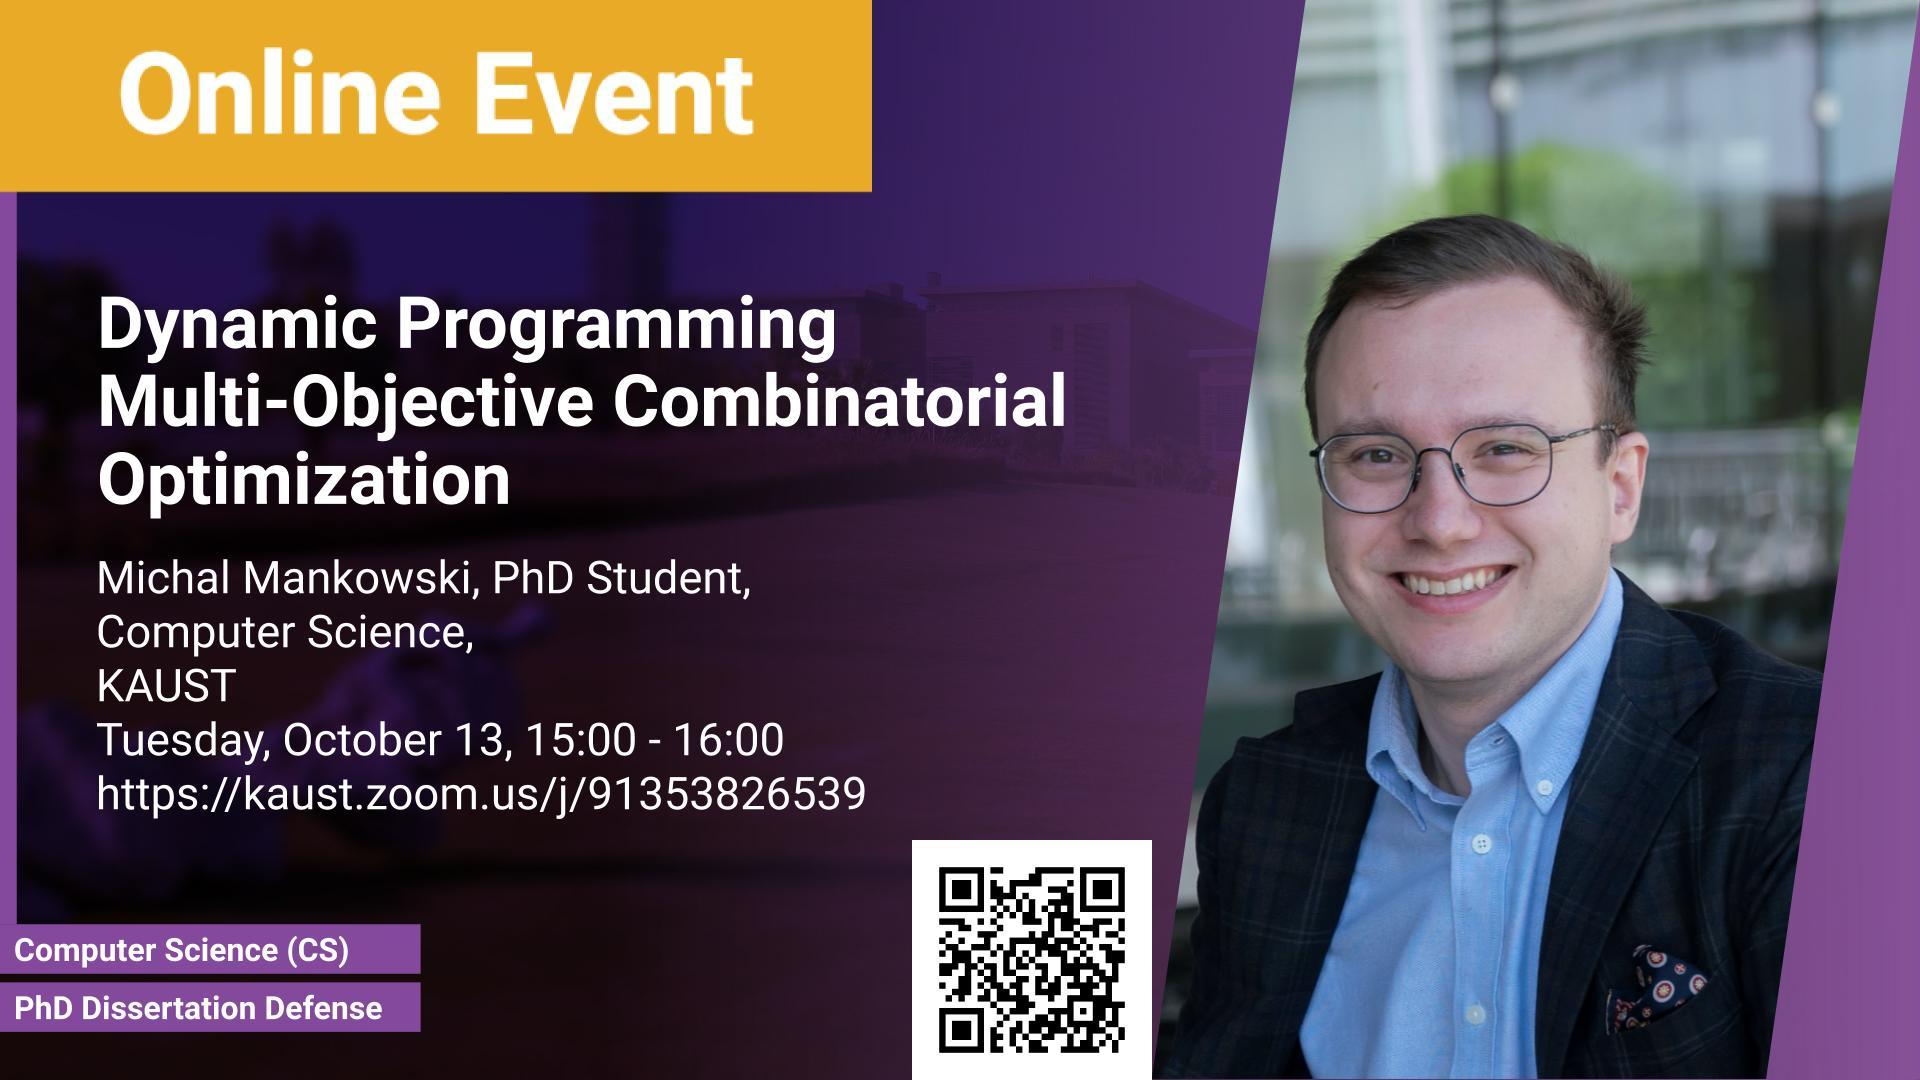 KAUST CEMSE CS PhD Dissertation Defense Michal Mankowski Dynamic Programming Multi Objective Combinatorial Optimization